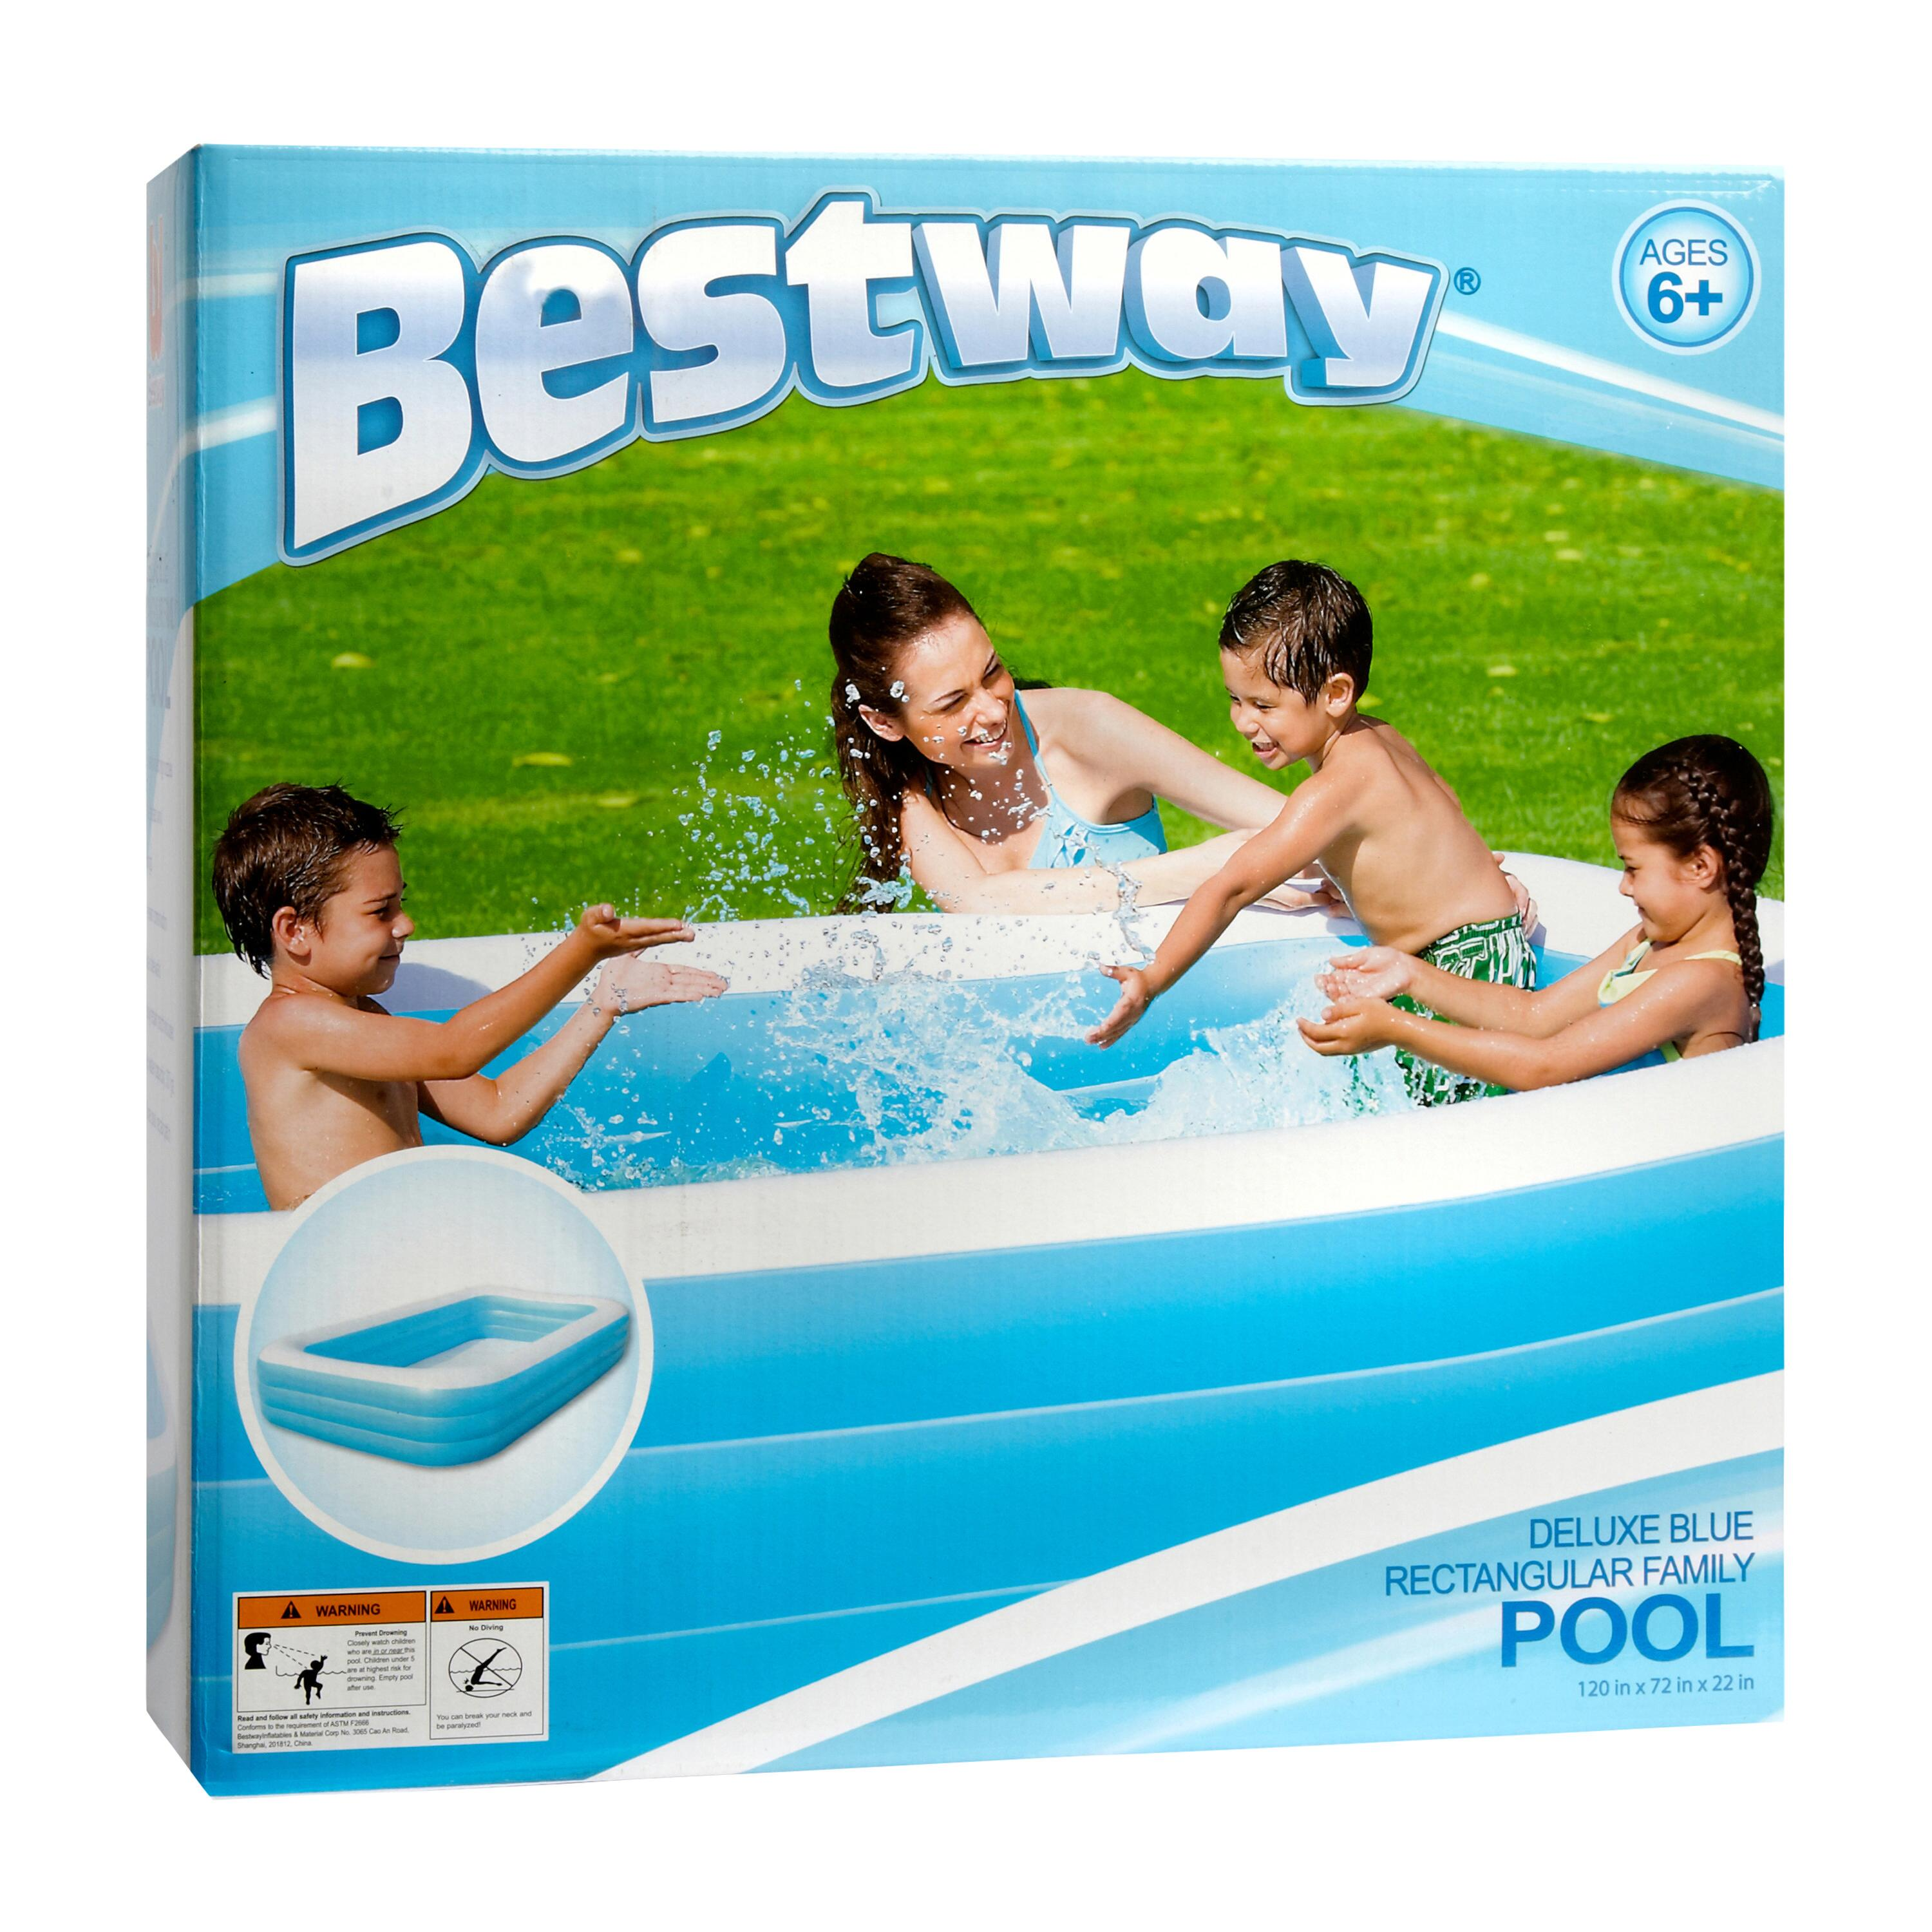 Deluxe Rectangular Inflatable Family Pool Christmas Tree Shops And That Home Decor Furniture Gifts Store